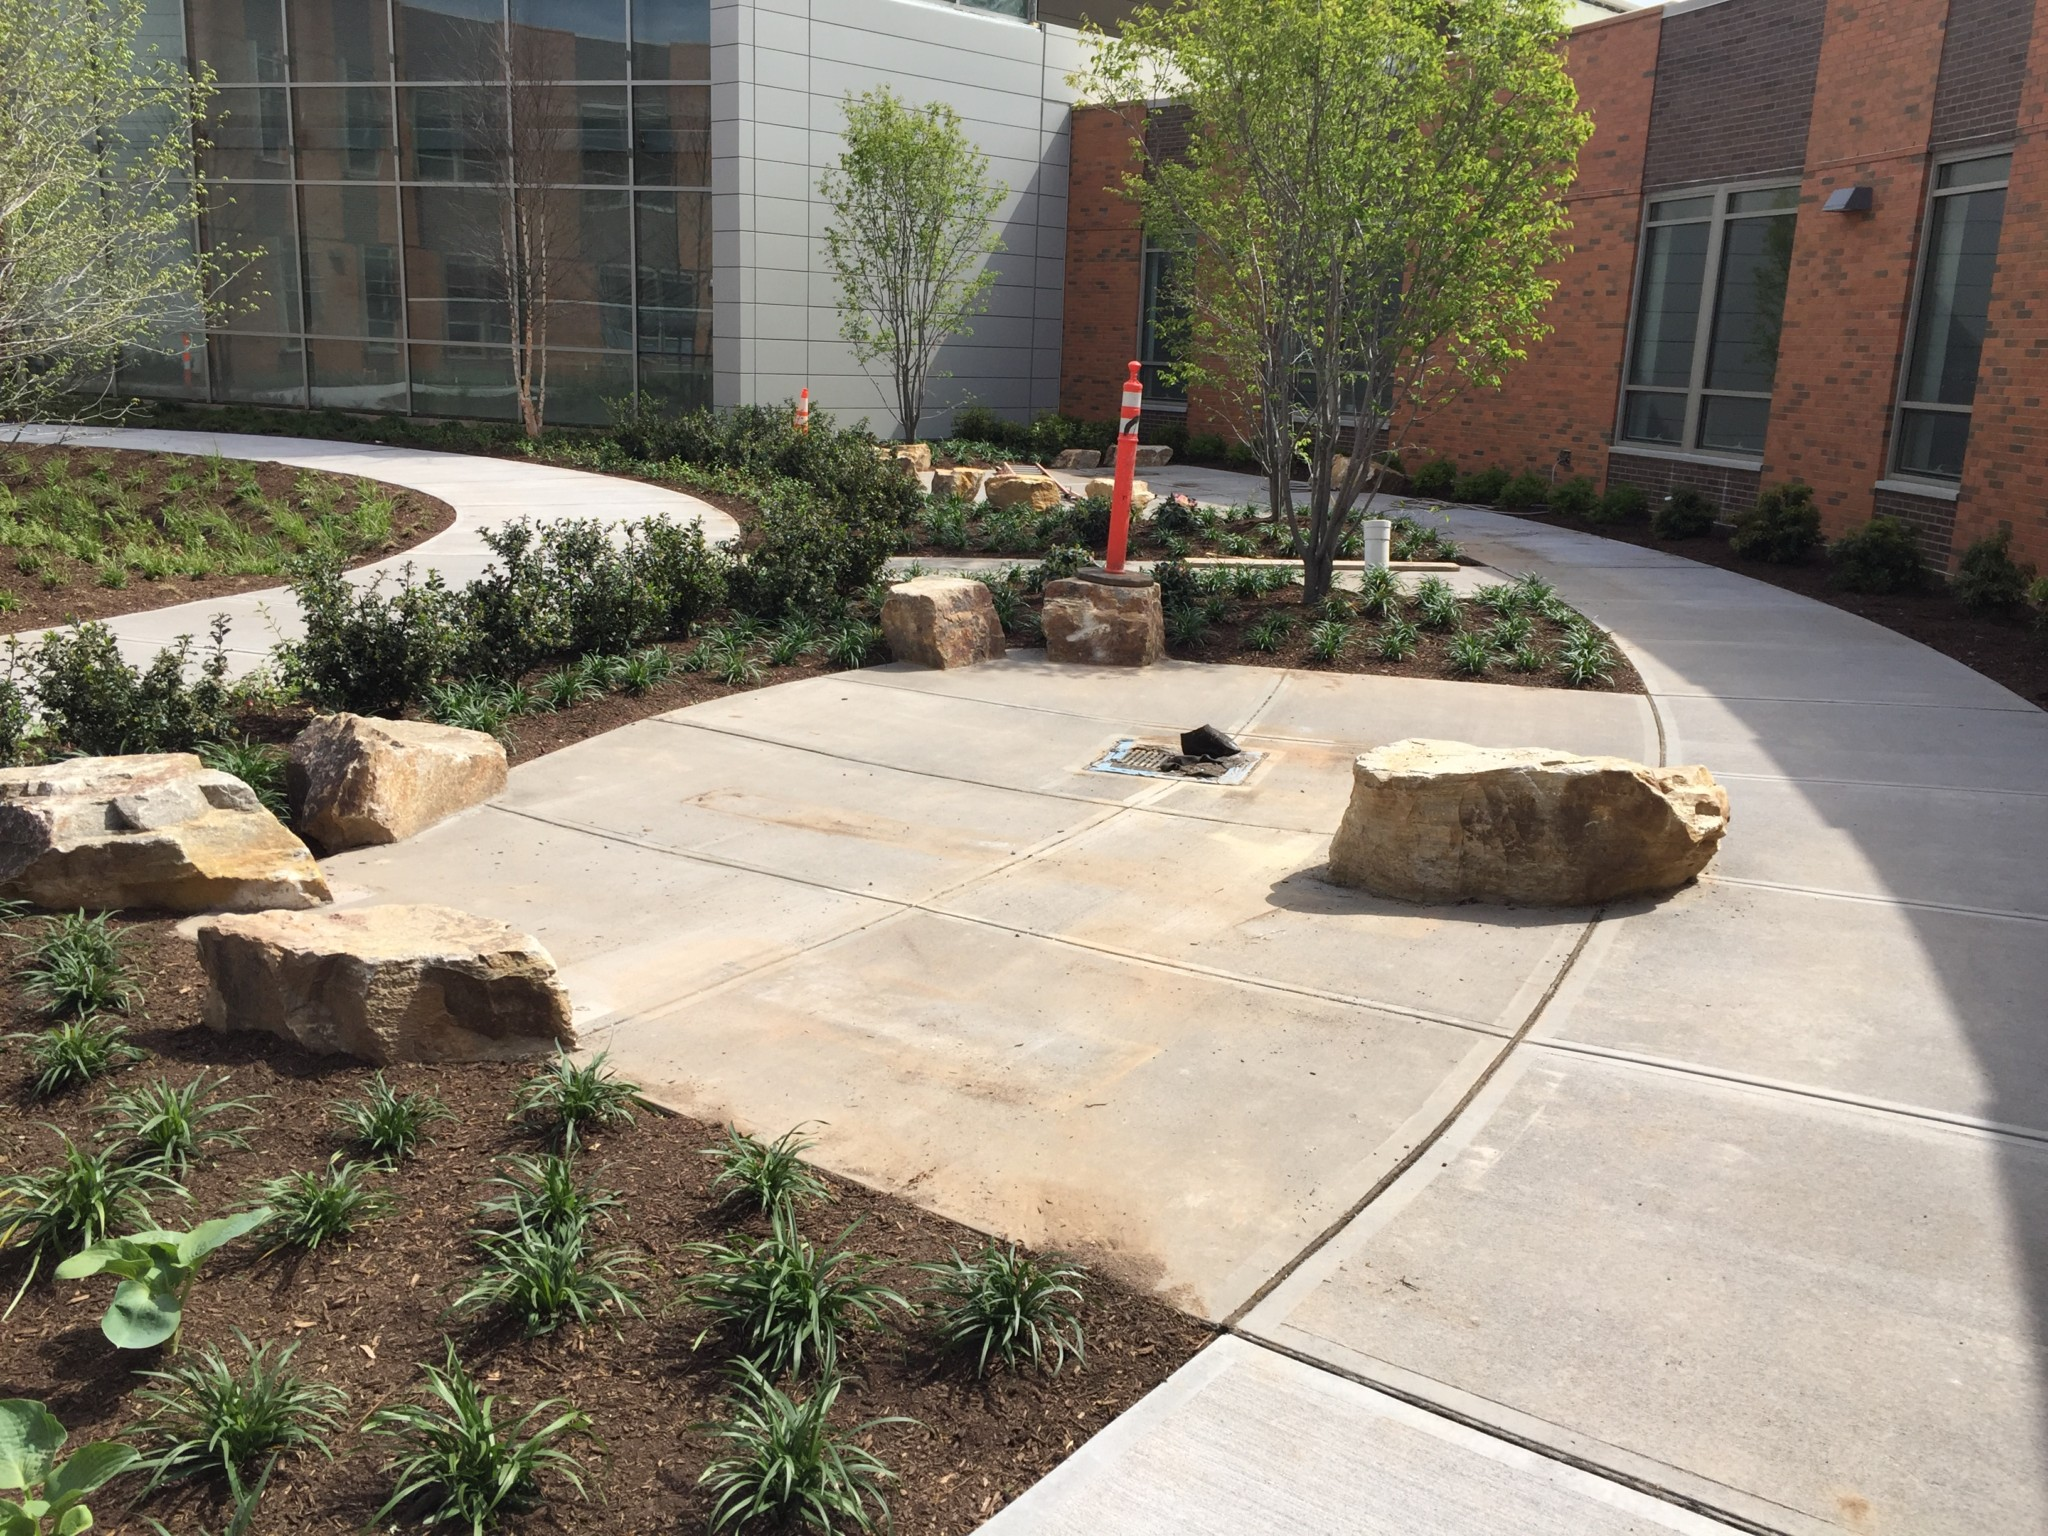 Prestressed Concrete Sidewalks : Charter oak international academy west hartford ct